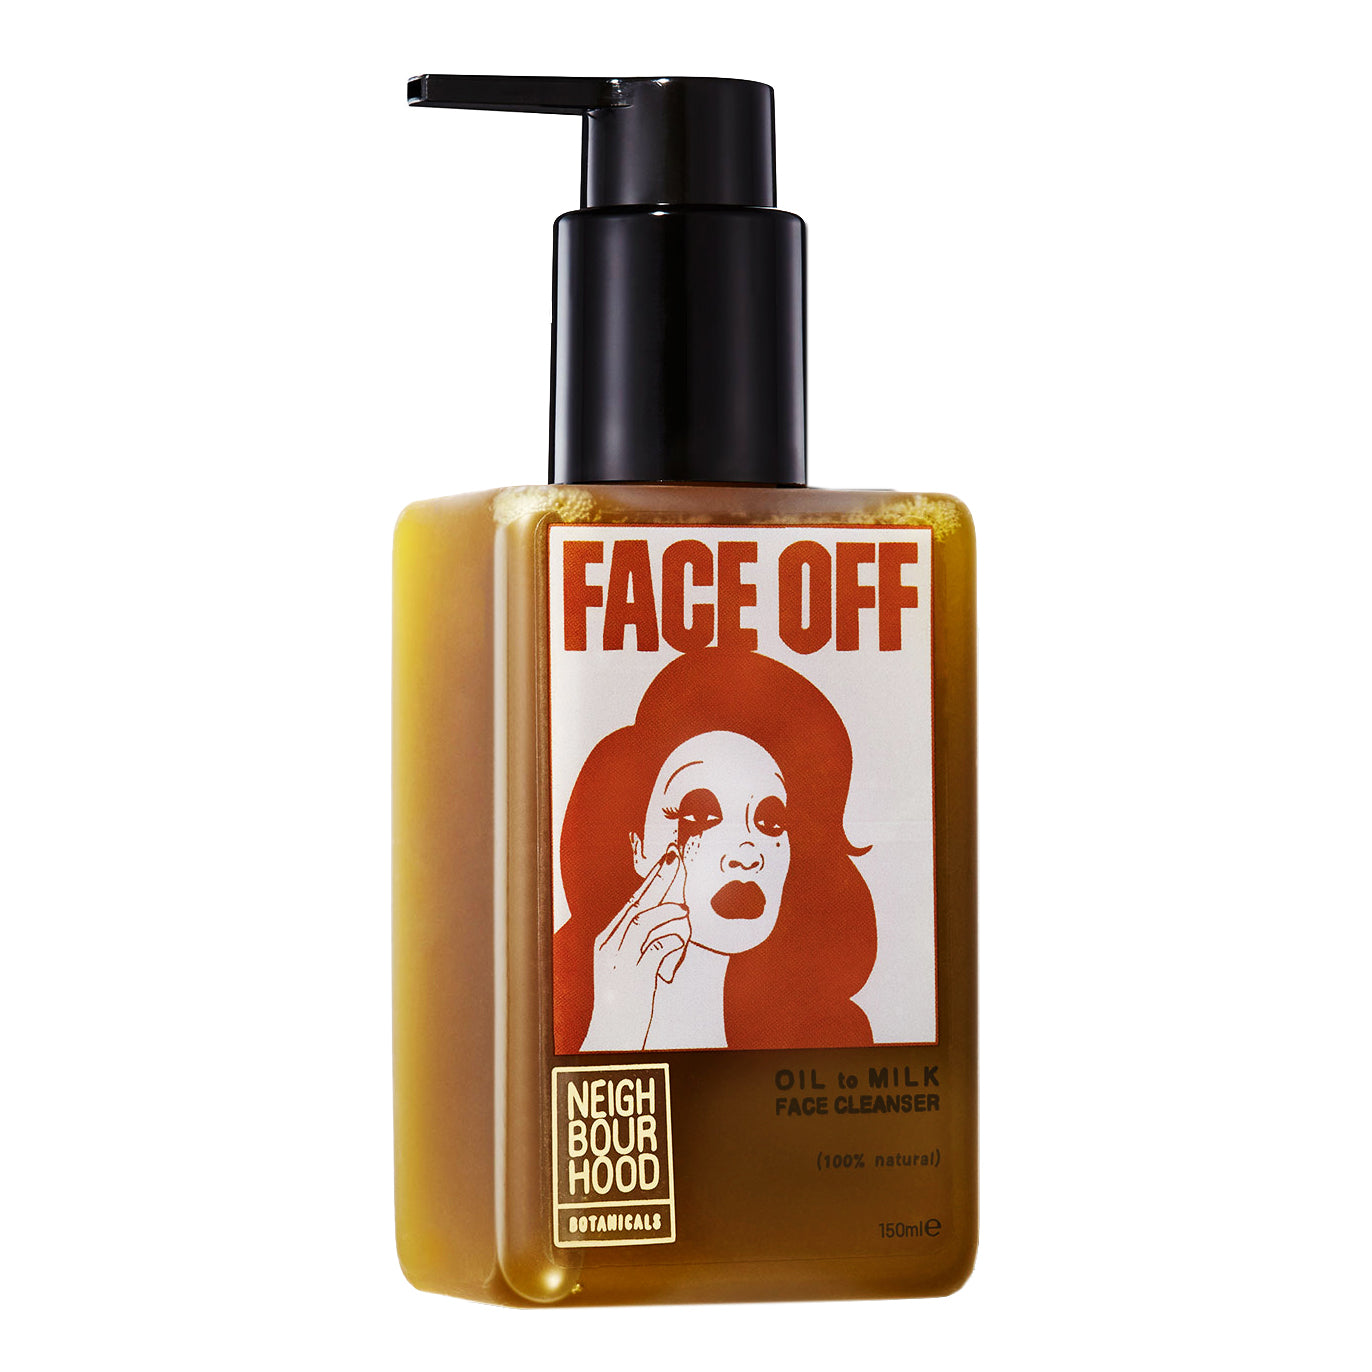 Neighbourhood Botanicals Face Off Oil to Milk Facial Cleanser, 150ml